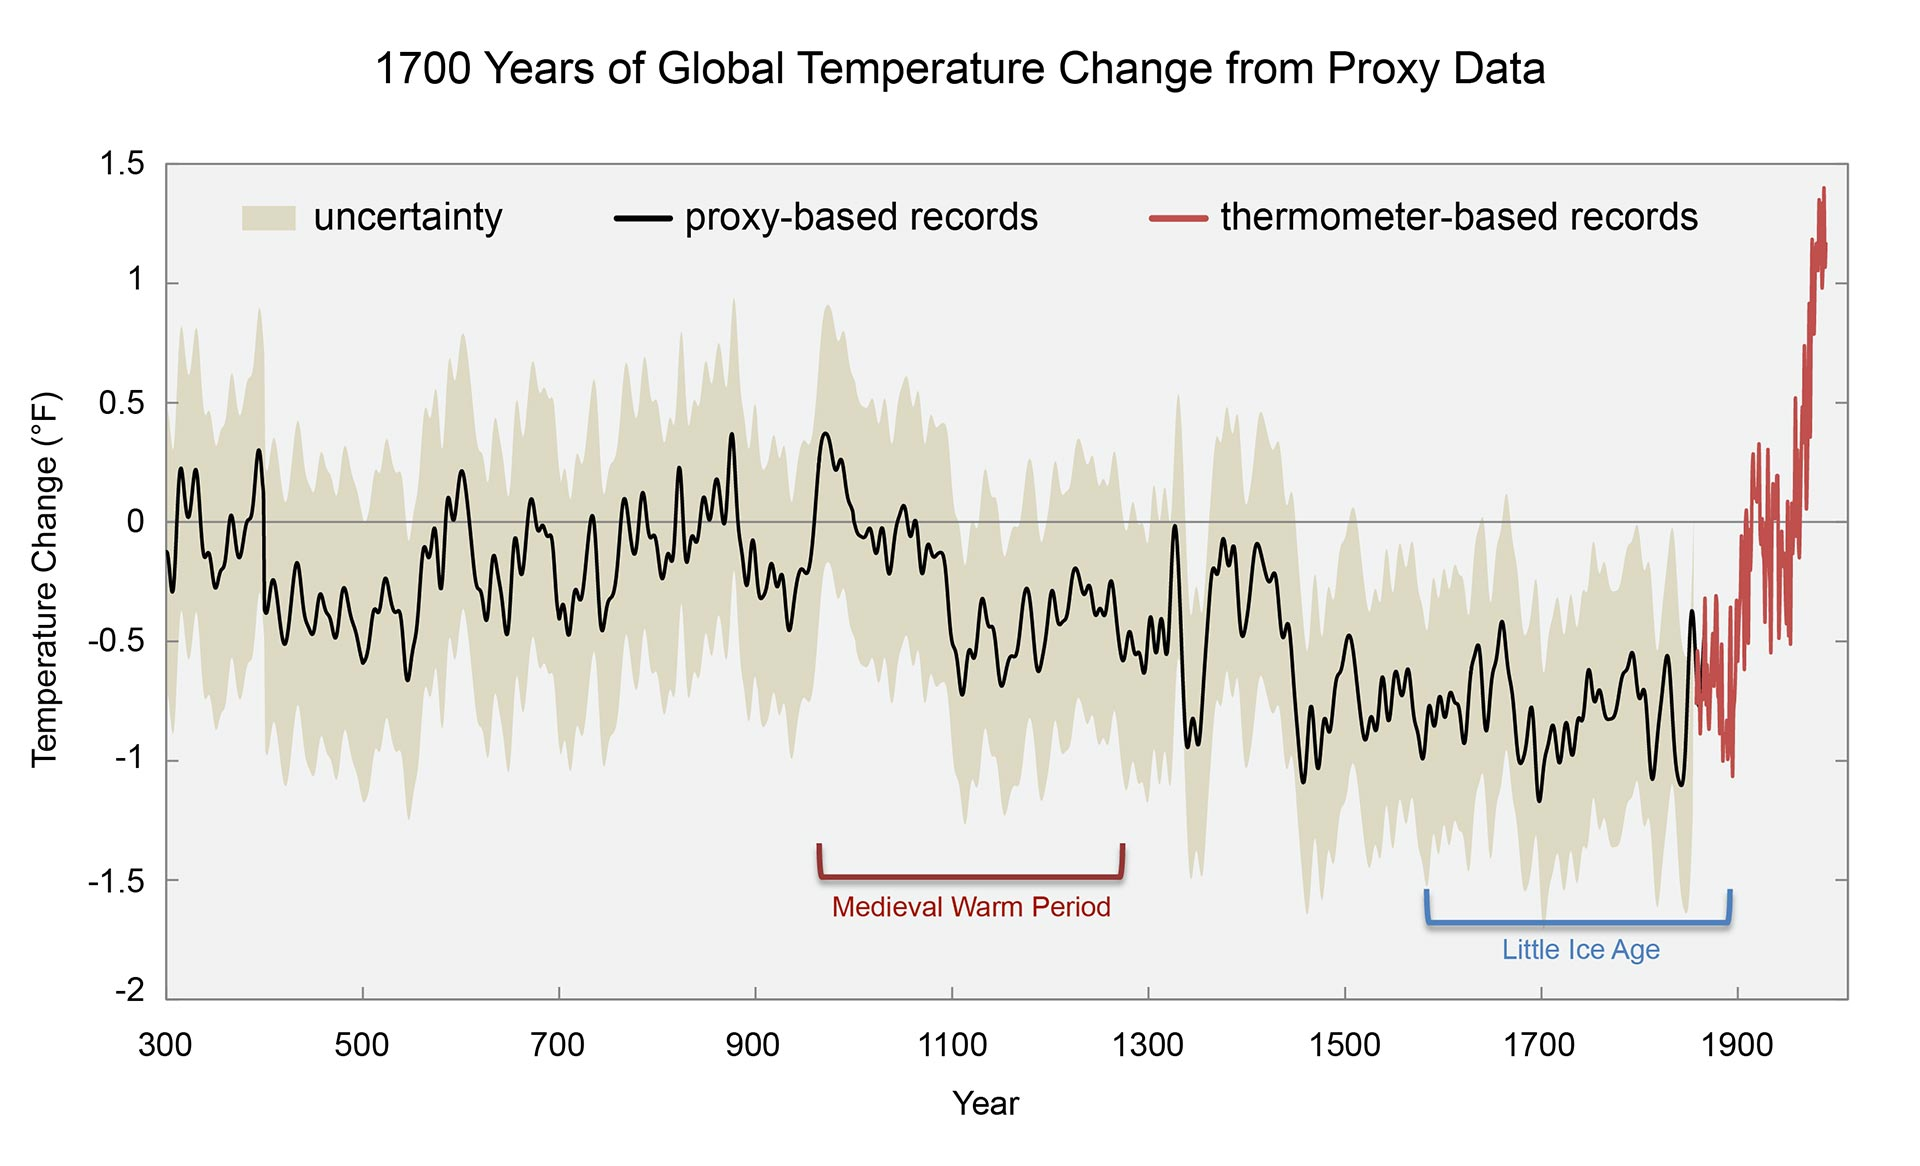 1700 Years of Temperature Change from Proxy Data